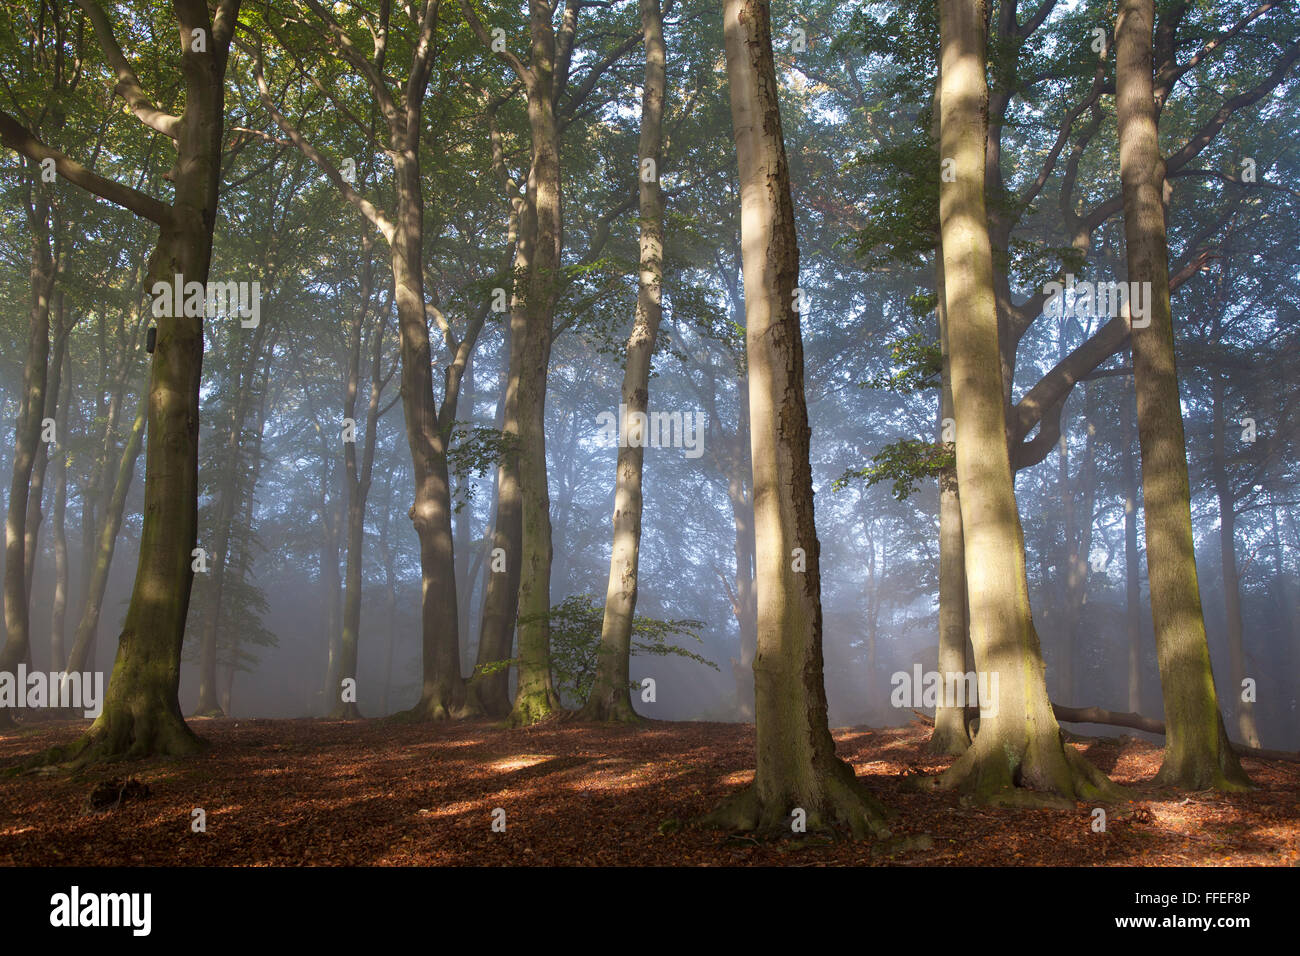 Europe, Germany, North Rhine-Westphalia, autumn in a forest at the Ruhrhoehenweg in the Ardey mountains near Wetter Stock Photo